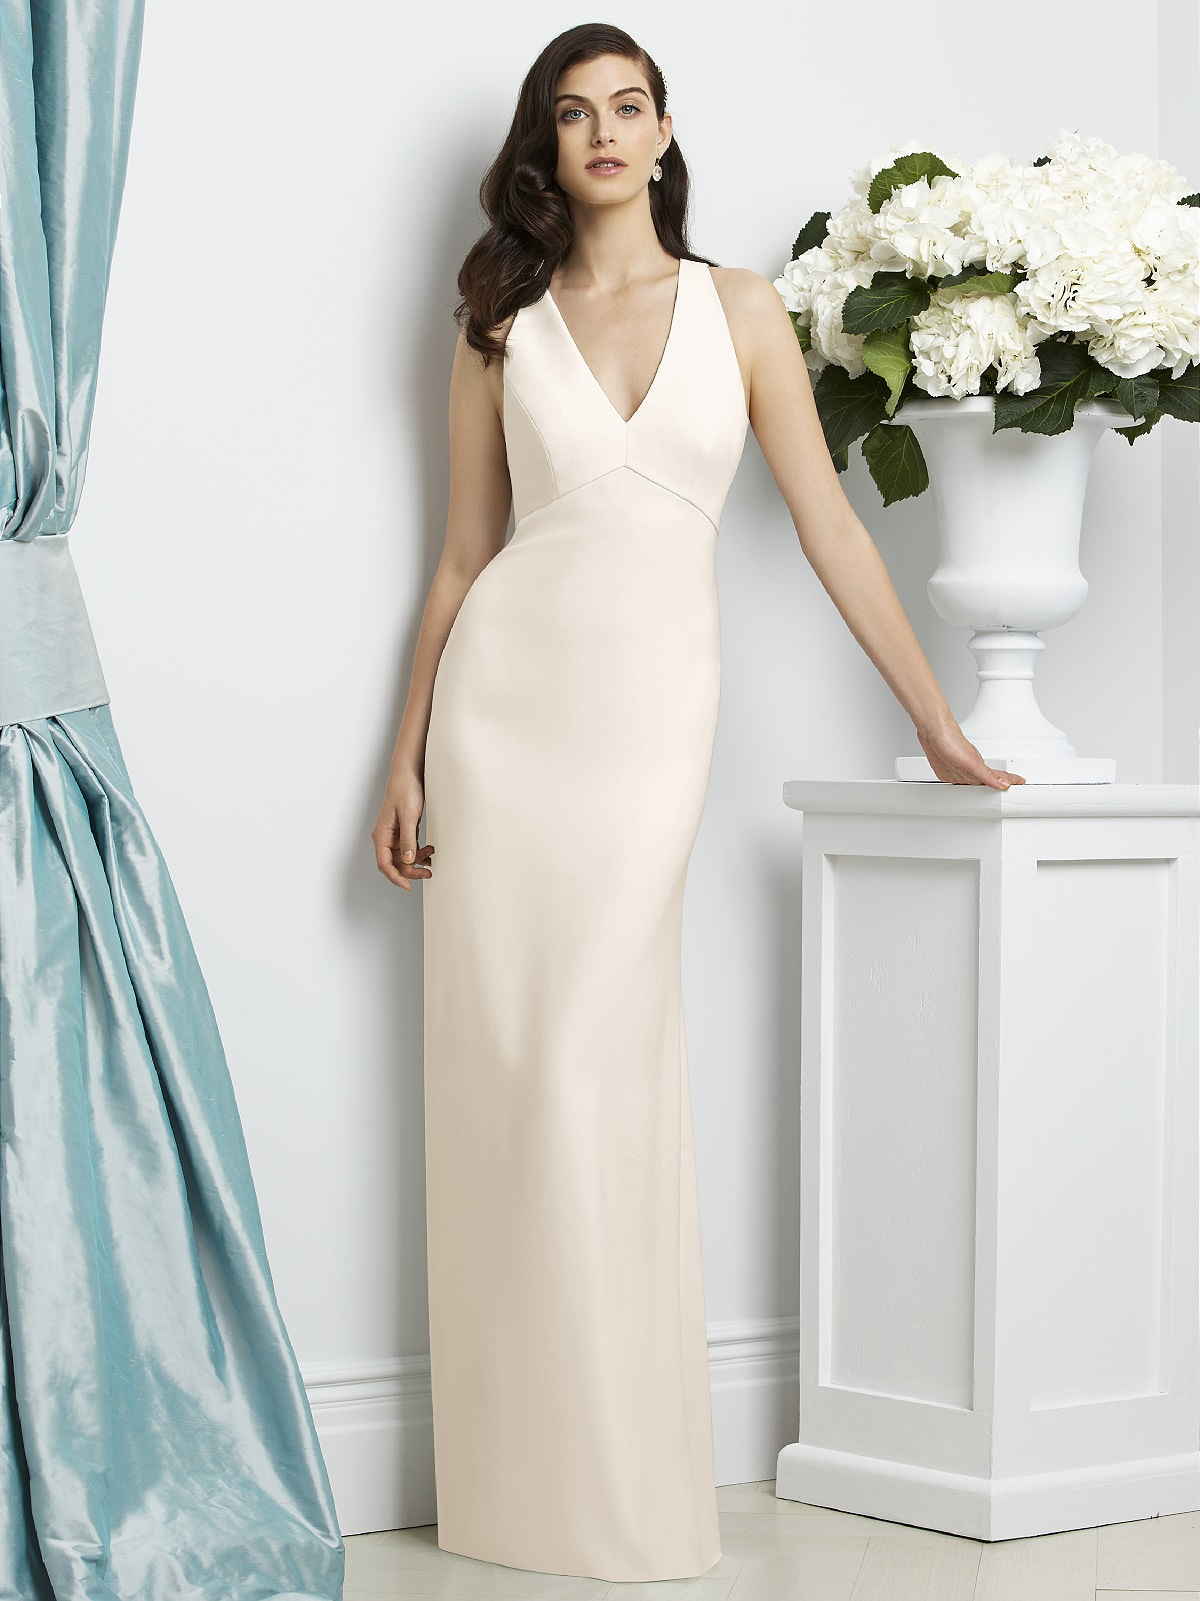 Dessy bridesmaid dressesdessy dresses 2938dessy collectionthe dessy bridesmaid dresses dessy 2938 loading zoom ombrellifo Gallery